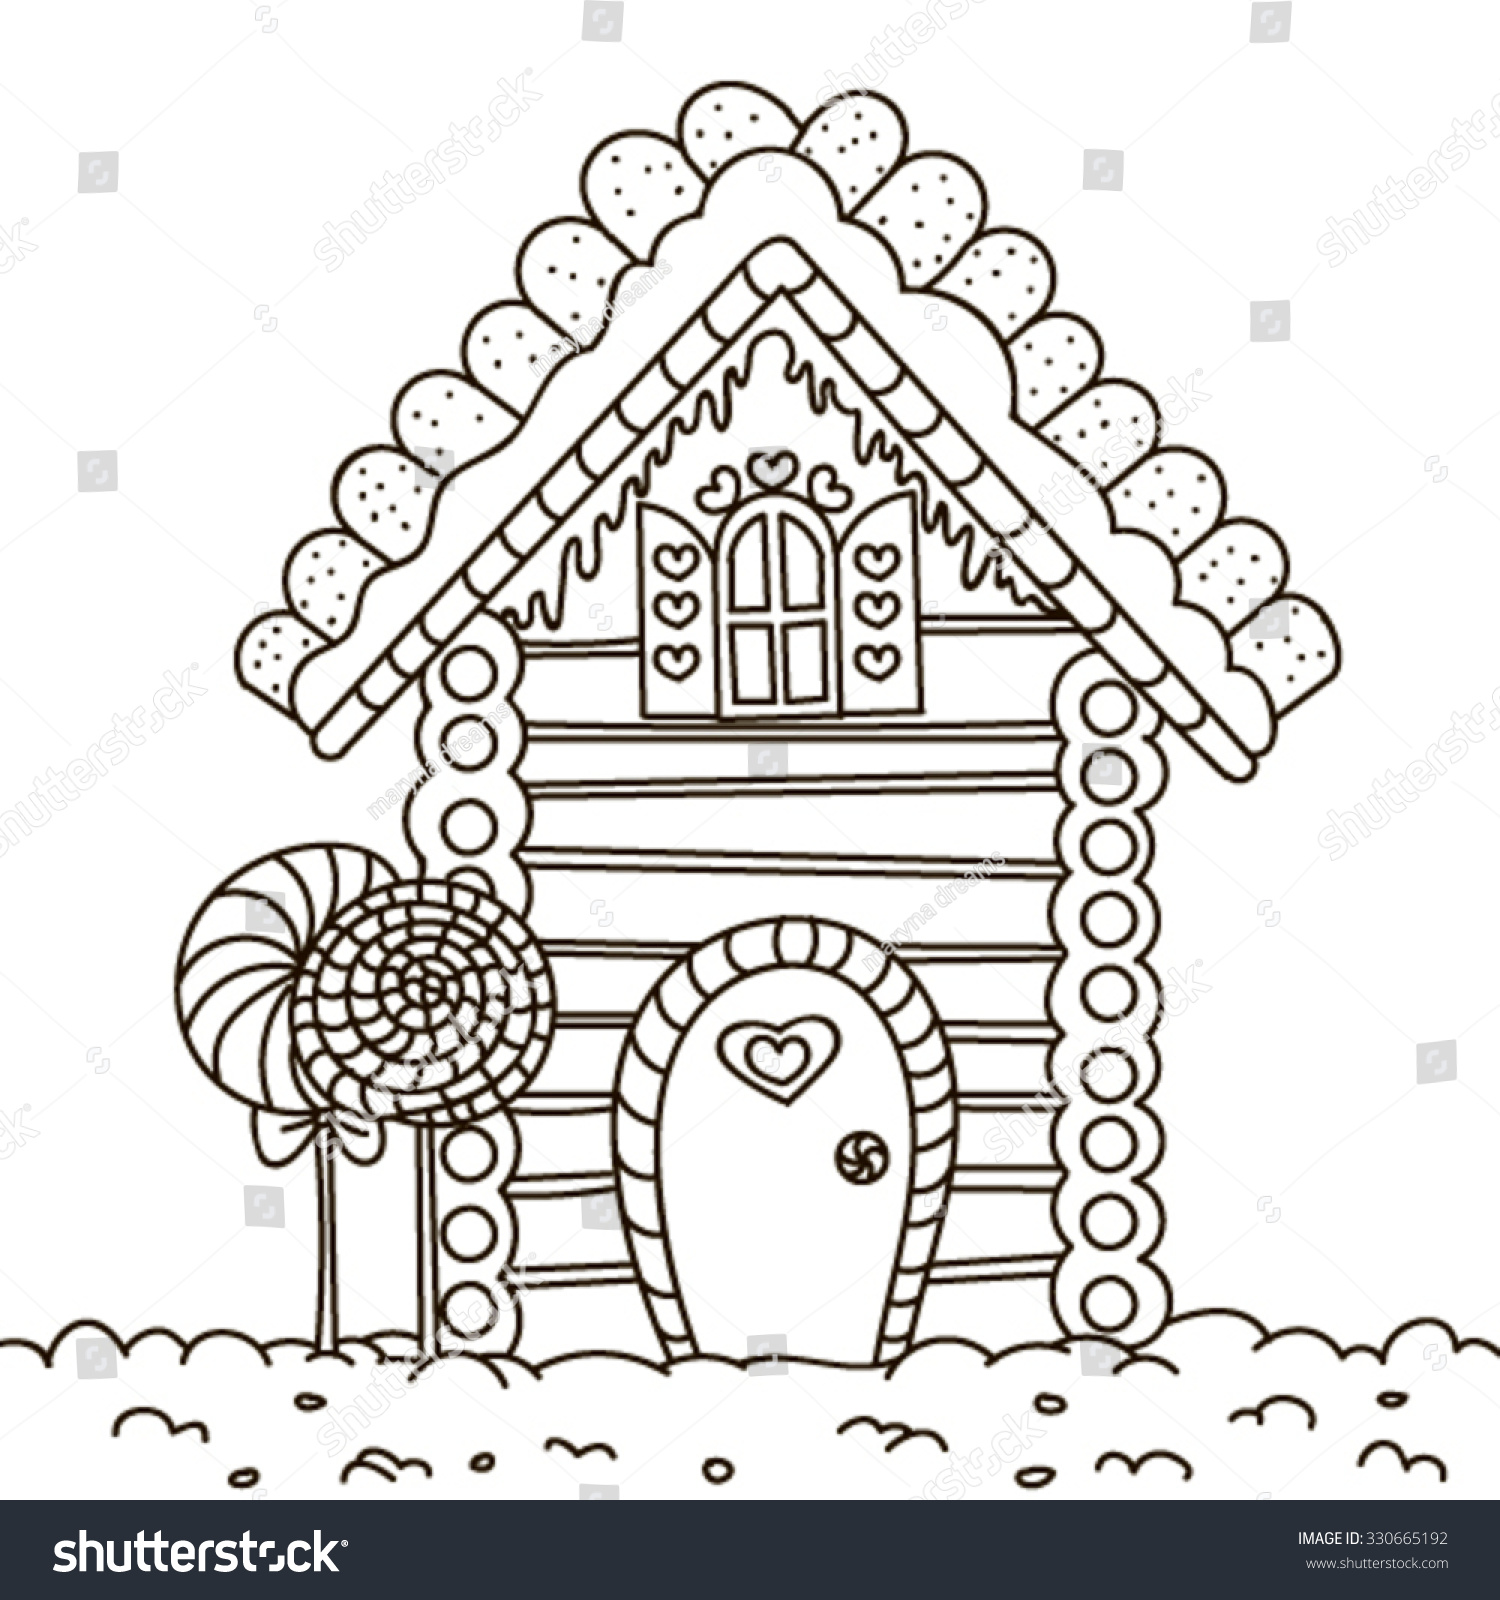 stock-vector-line-art-illustration-of-a-gingerbread-house-coloring-page-330665192